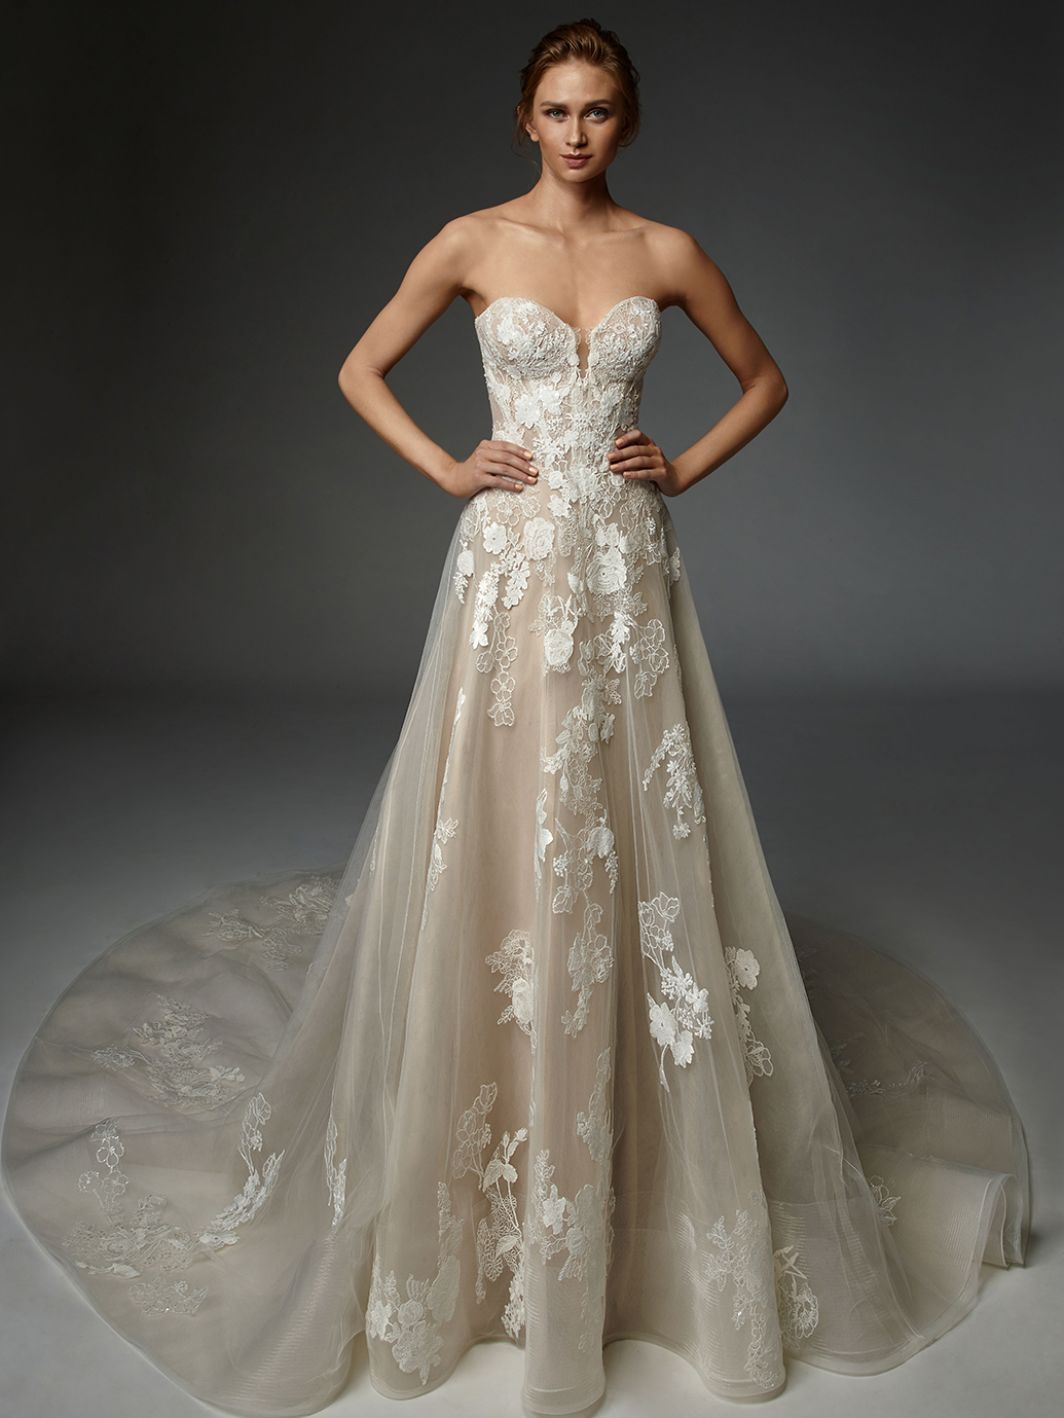 Hyacinthe - New, Gown, Élysée by Enzoani - Eternal Bridal